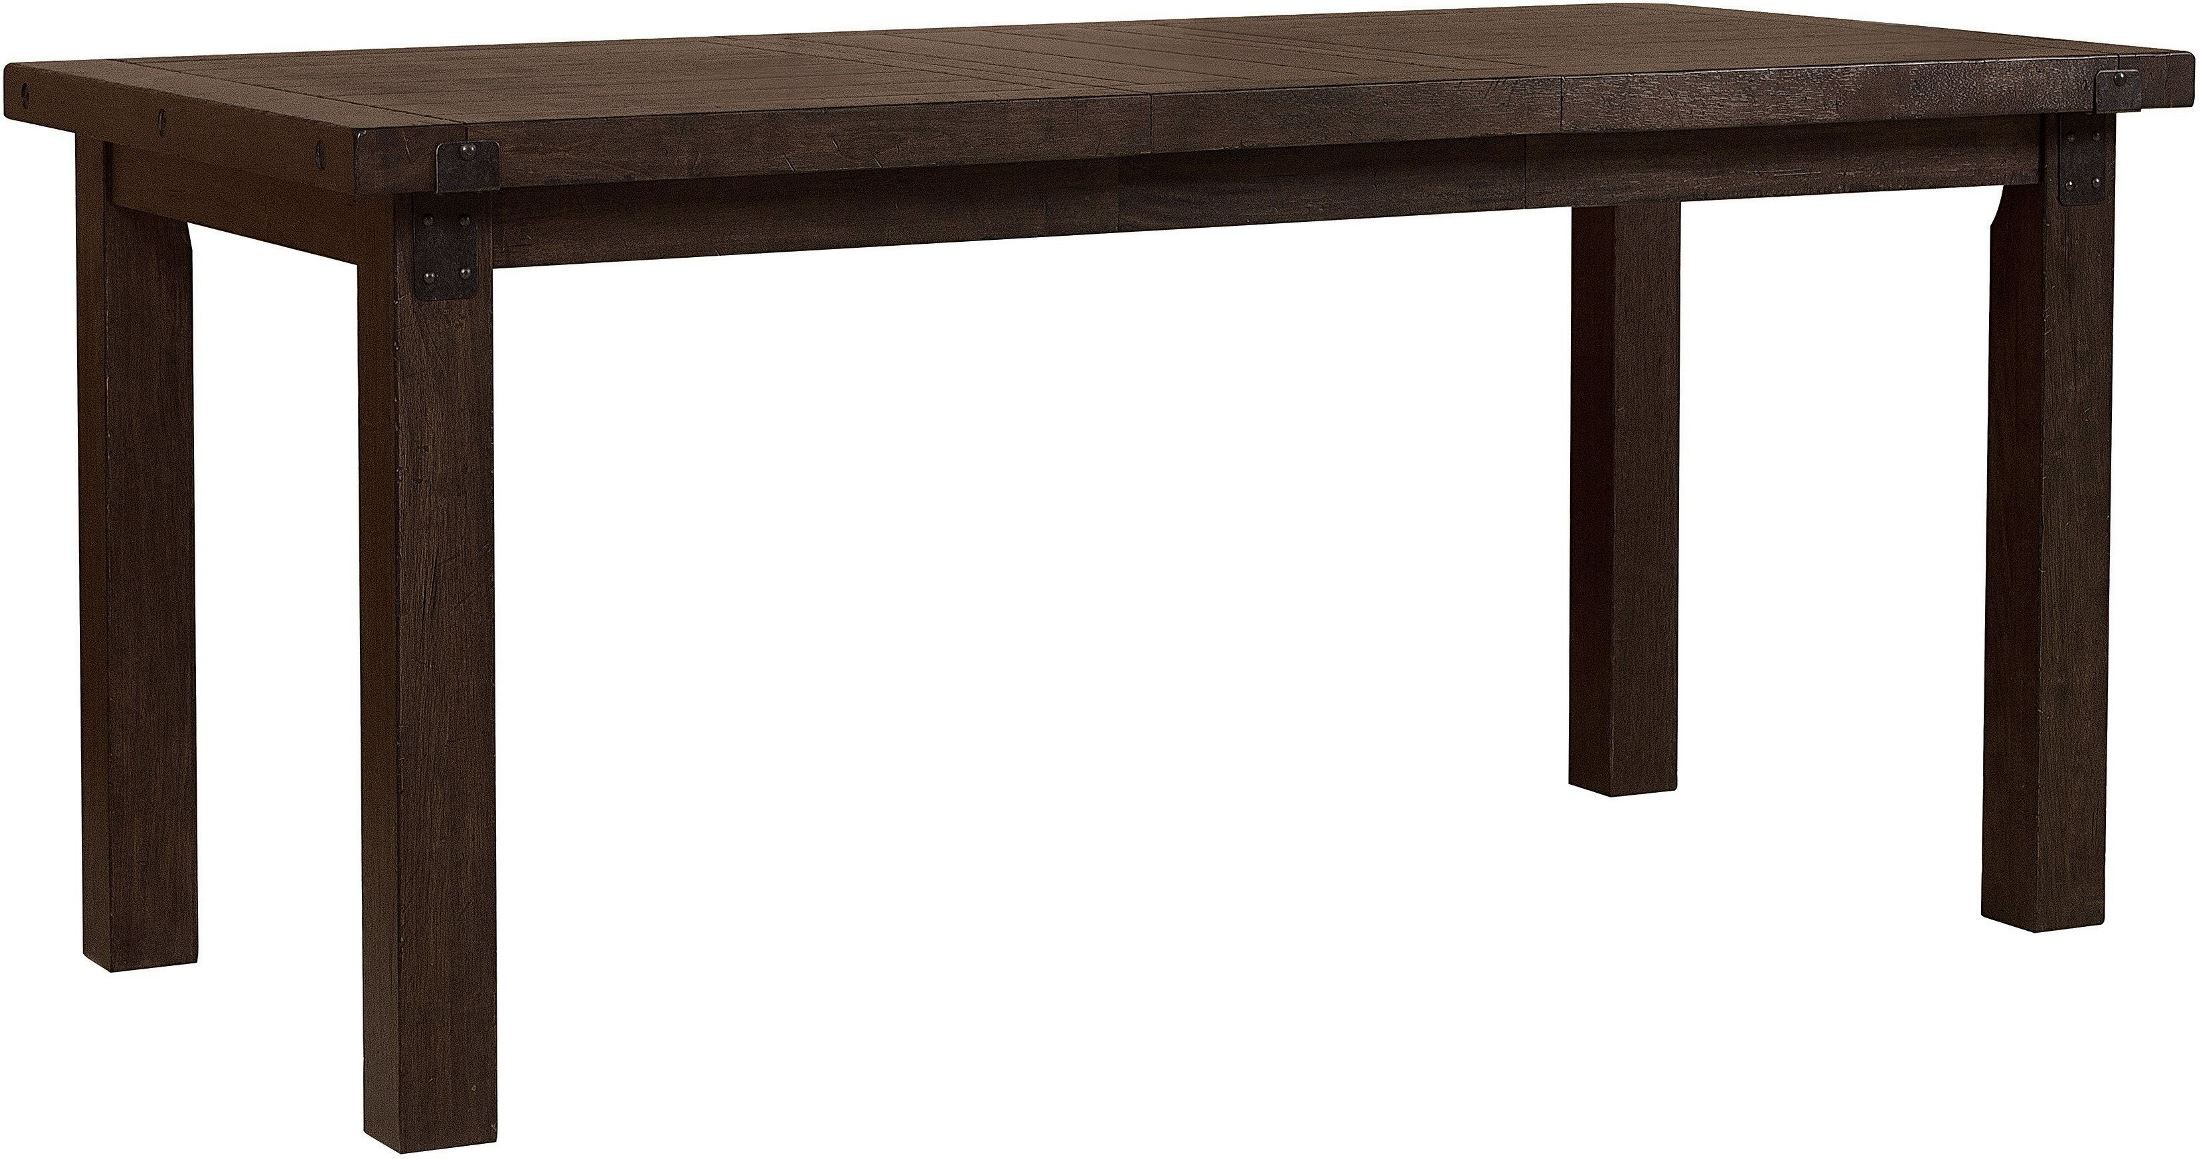 fulton st brown rectangular counter height dining table from samuel lawrence coleman furniture. Black Bedroom Furniture Sets. Home Design Ideas